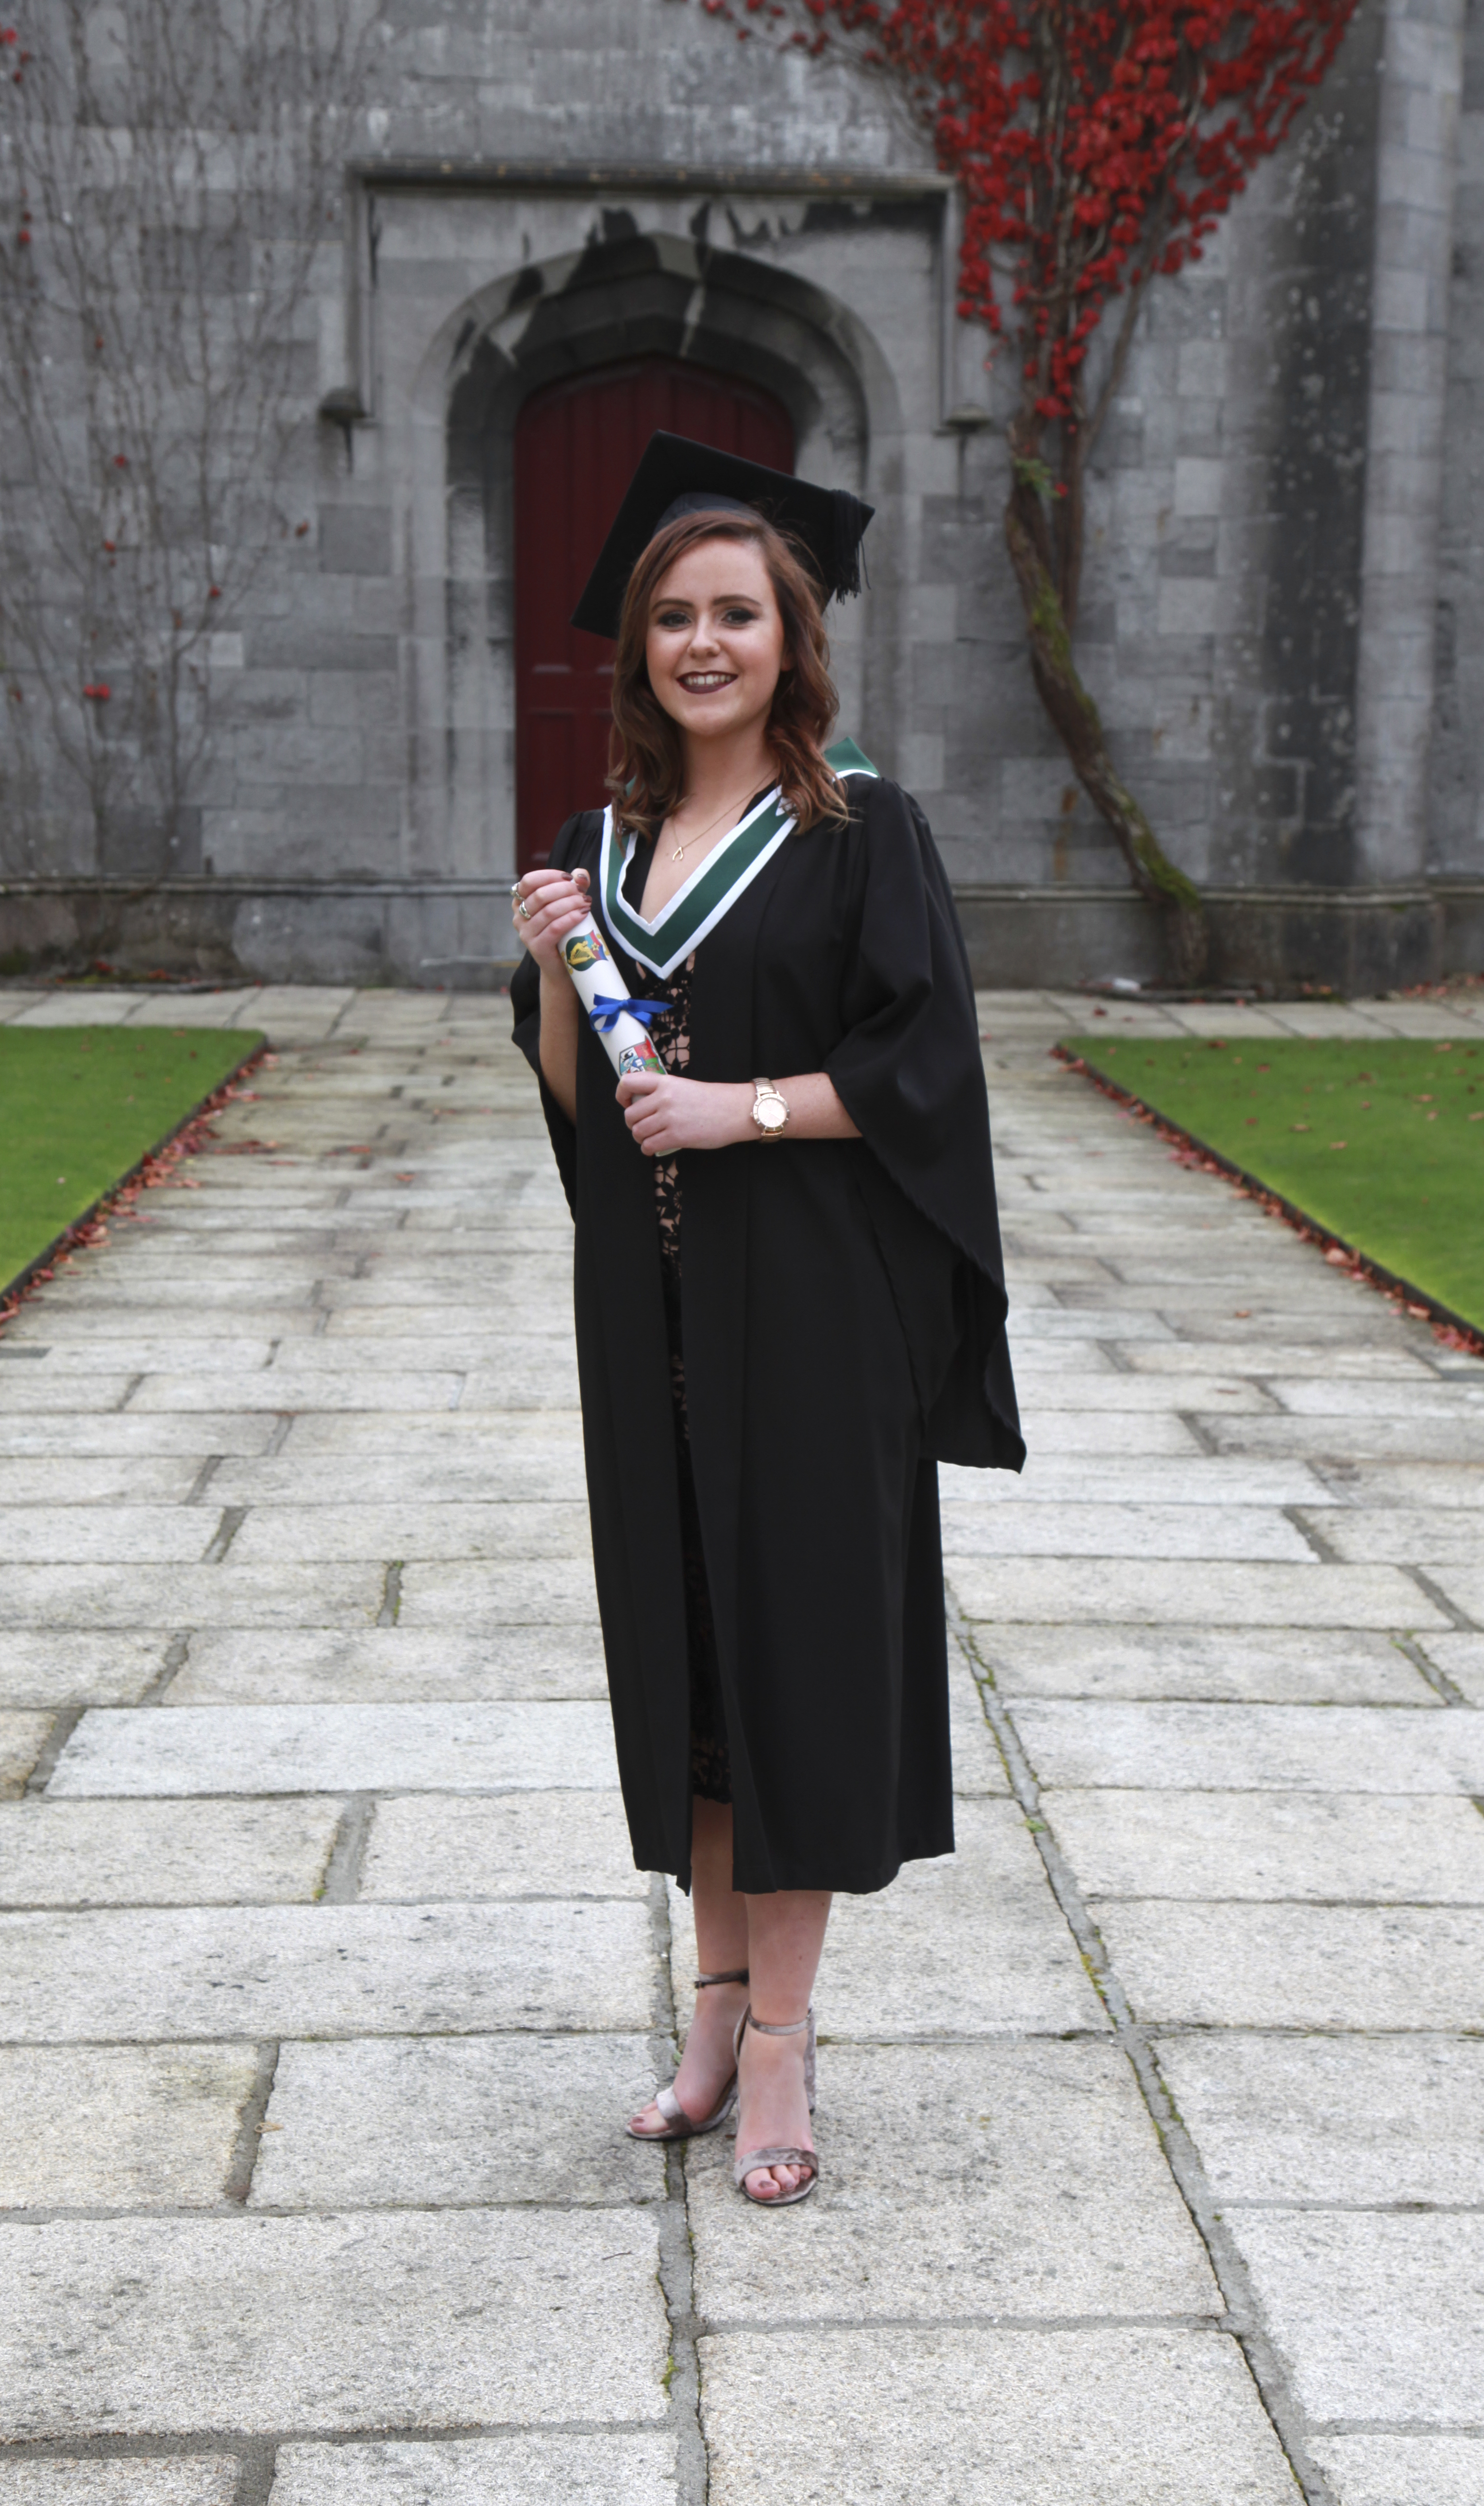 Graduation NUIG full length